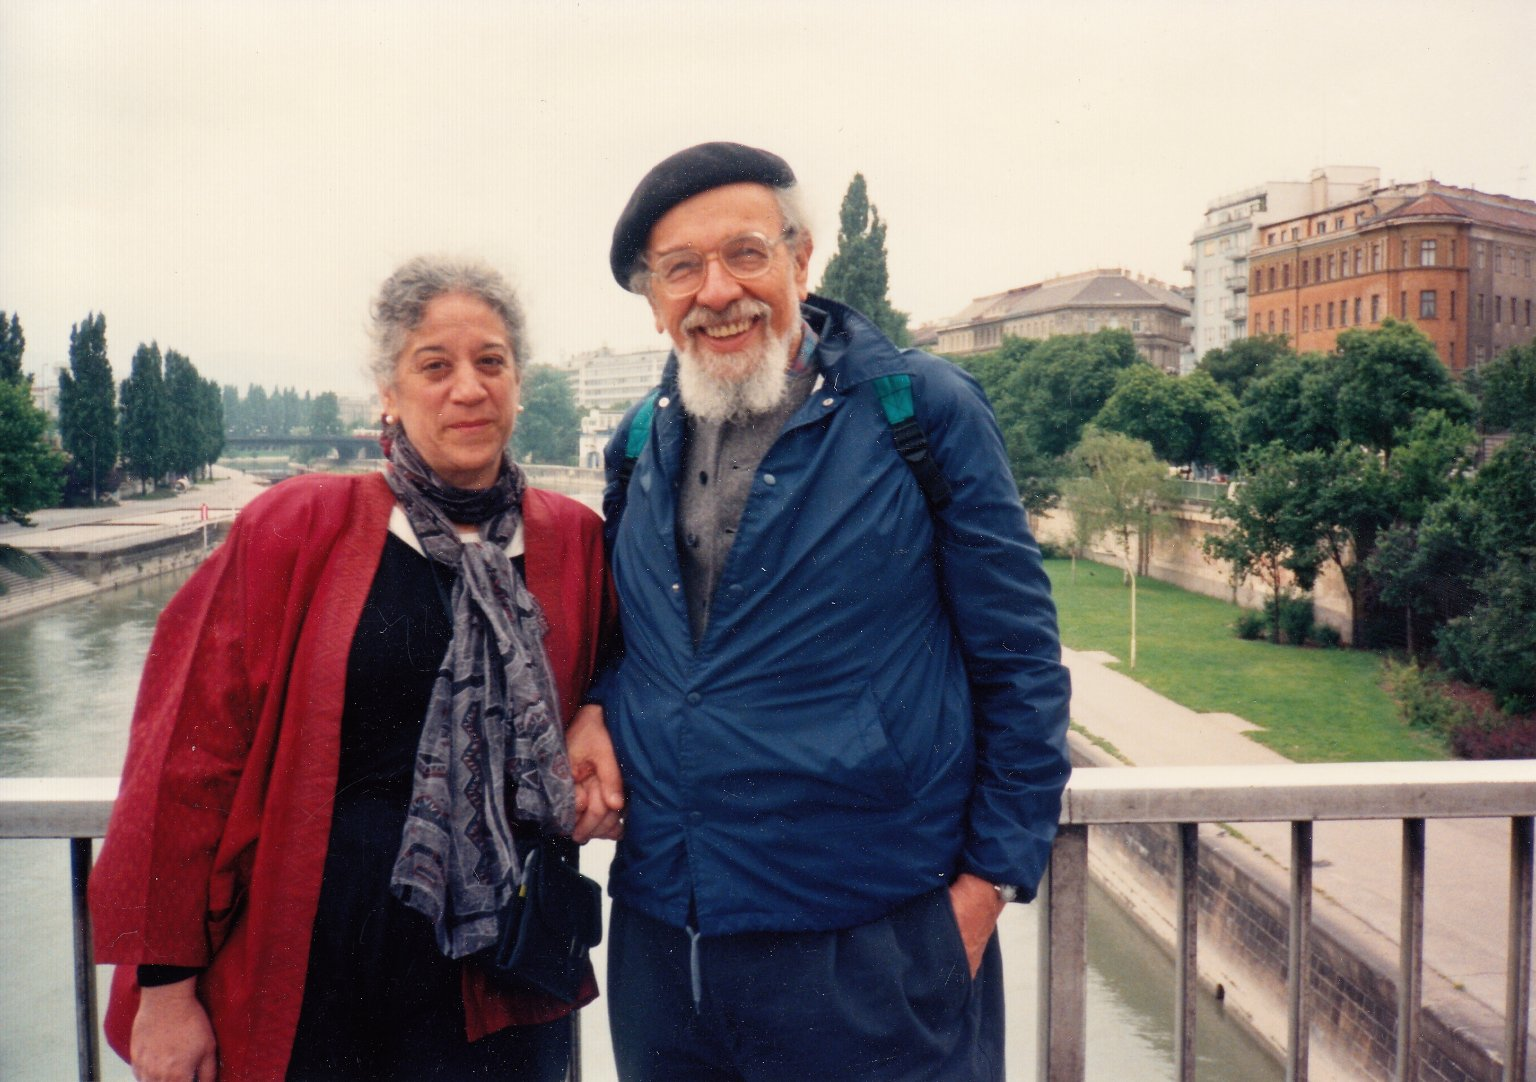 Rabbi Zalman Schachter-Shalomi and his partner, Eve Ilsen, holding hands on a bridge.